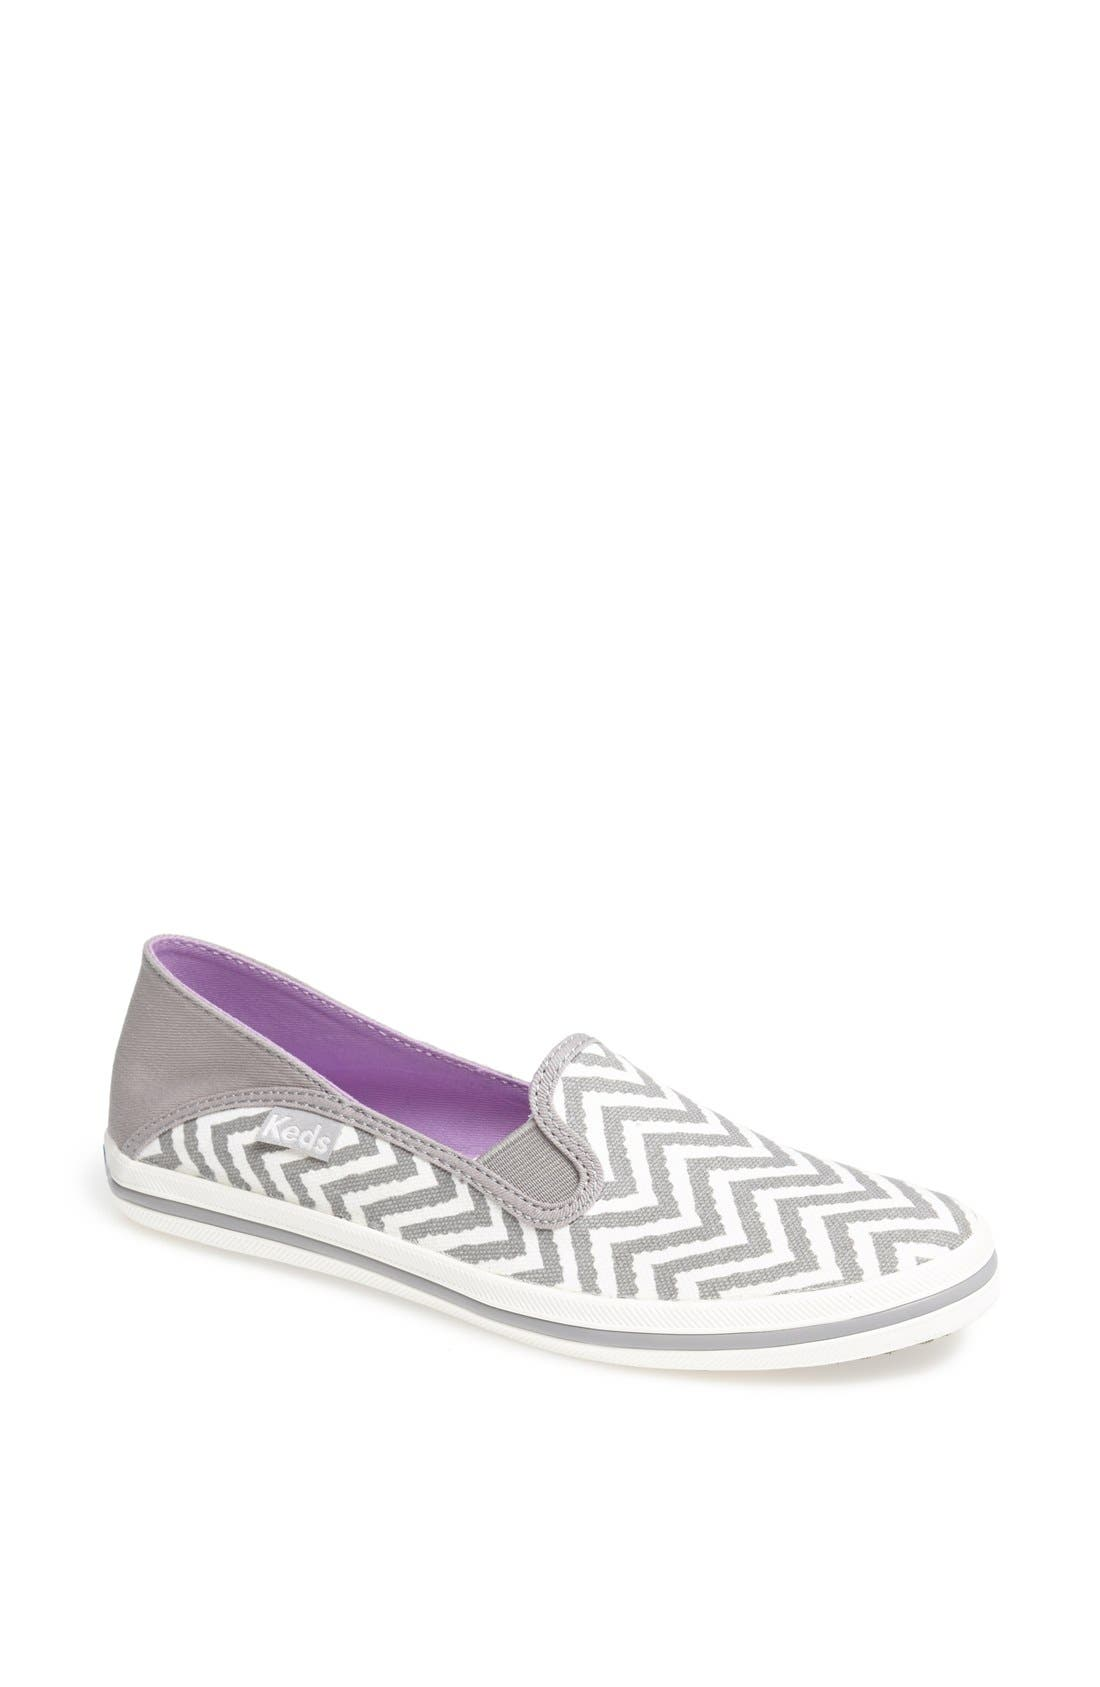 Alternate Image 1 Selected - Keds® 'Crash Back - Zigzag' Canvas Slip-On Sneaker (Women)